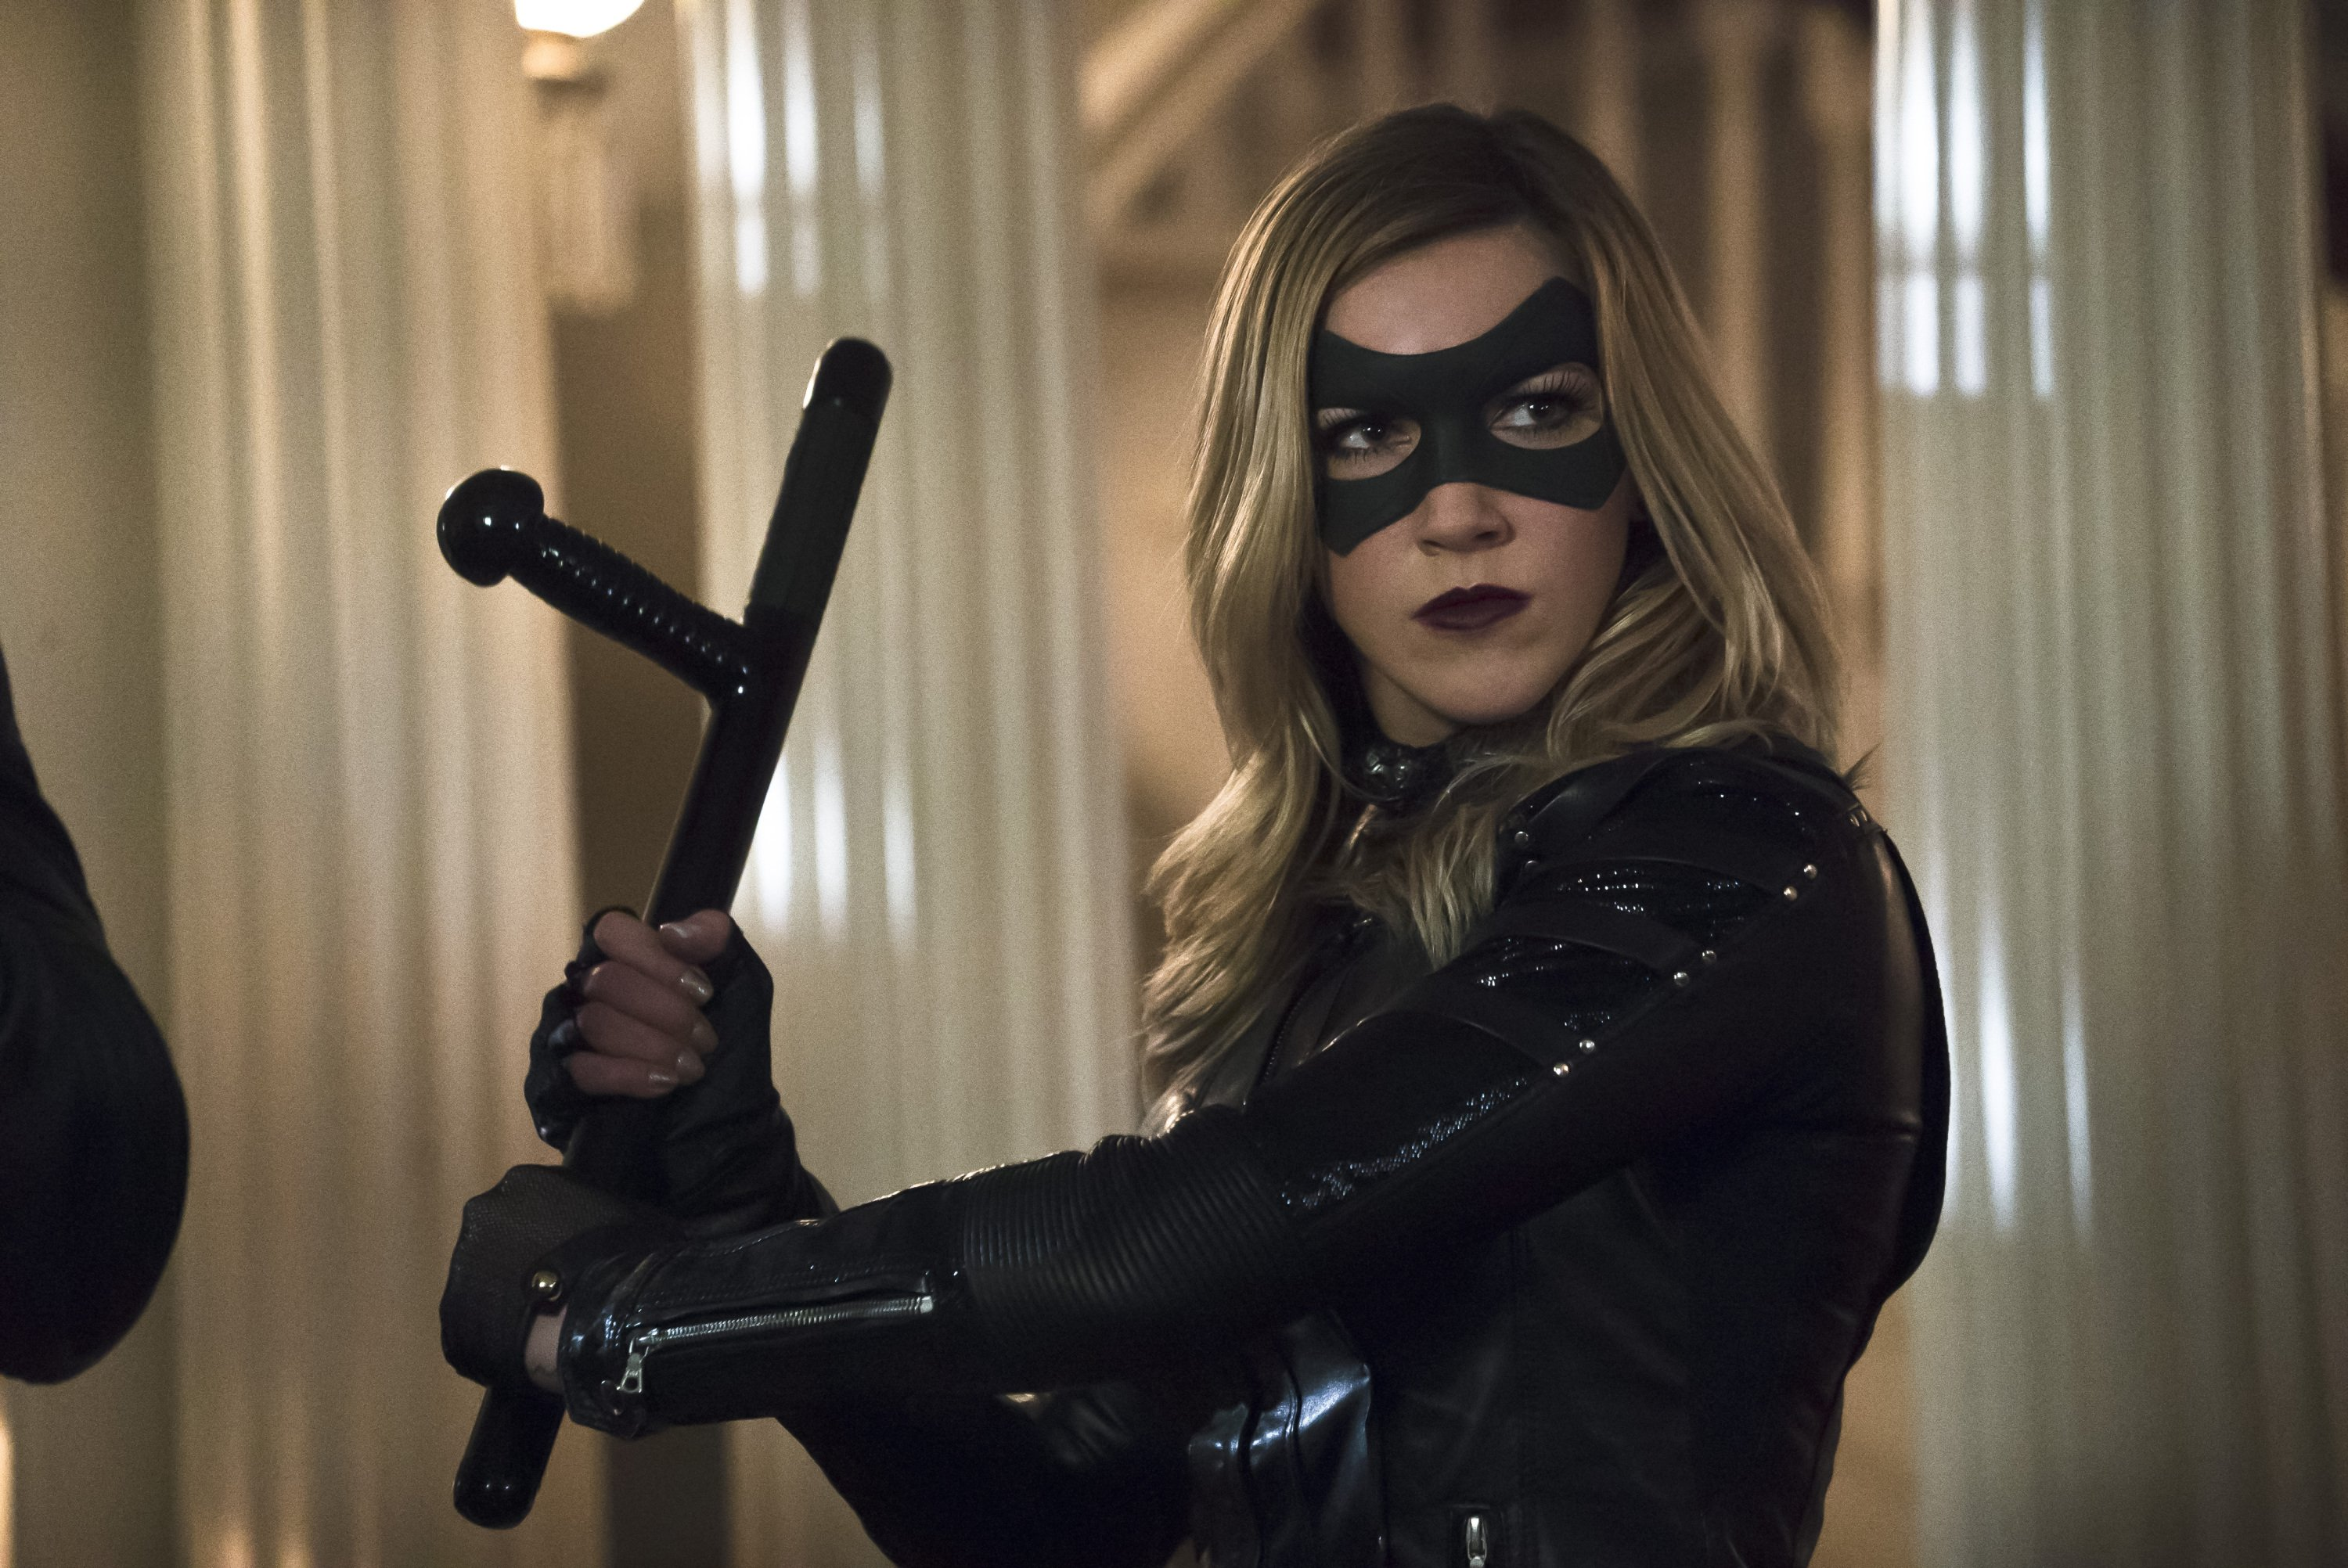 new extended promo for arrow season 4 episode 19 canary cry. Black Bedroom Furniture Sets. Home Design Ideas